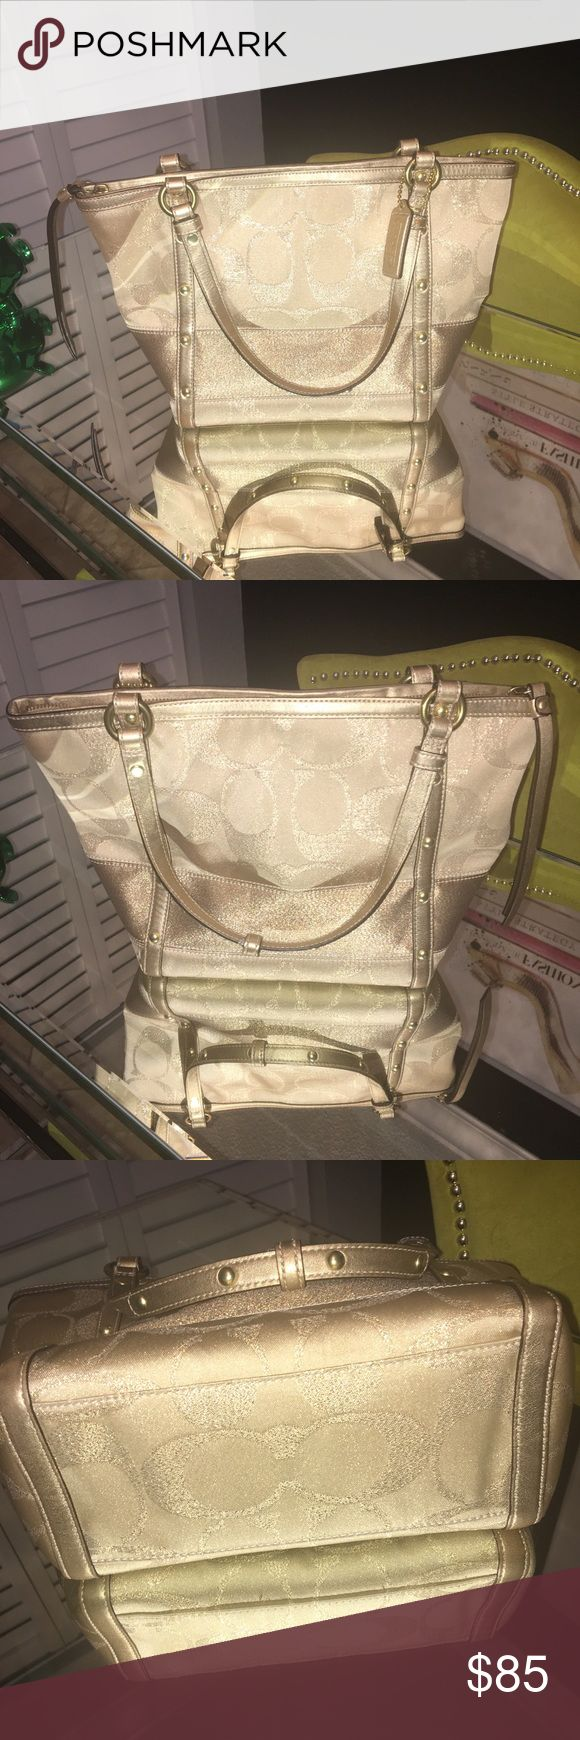 Gold coach tote bag Gold coach tote bag Coach Bags Totes